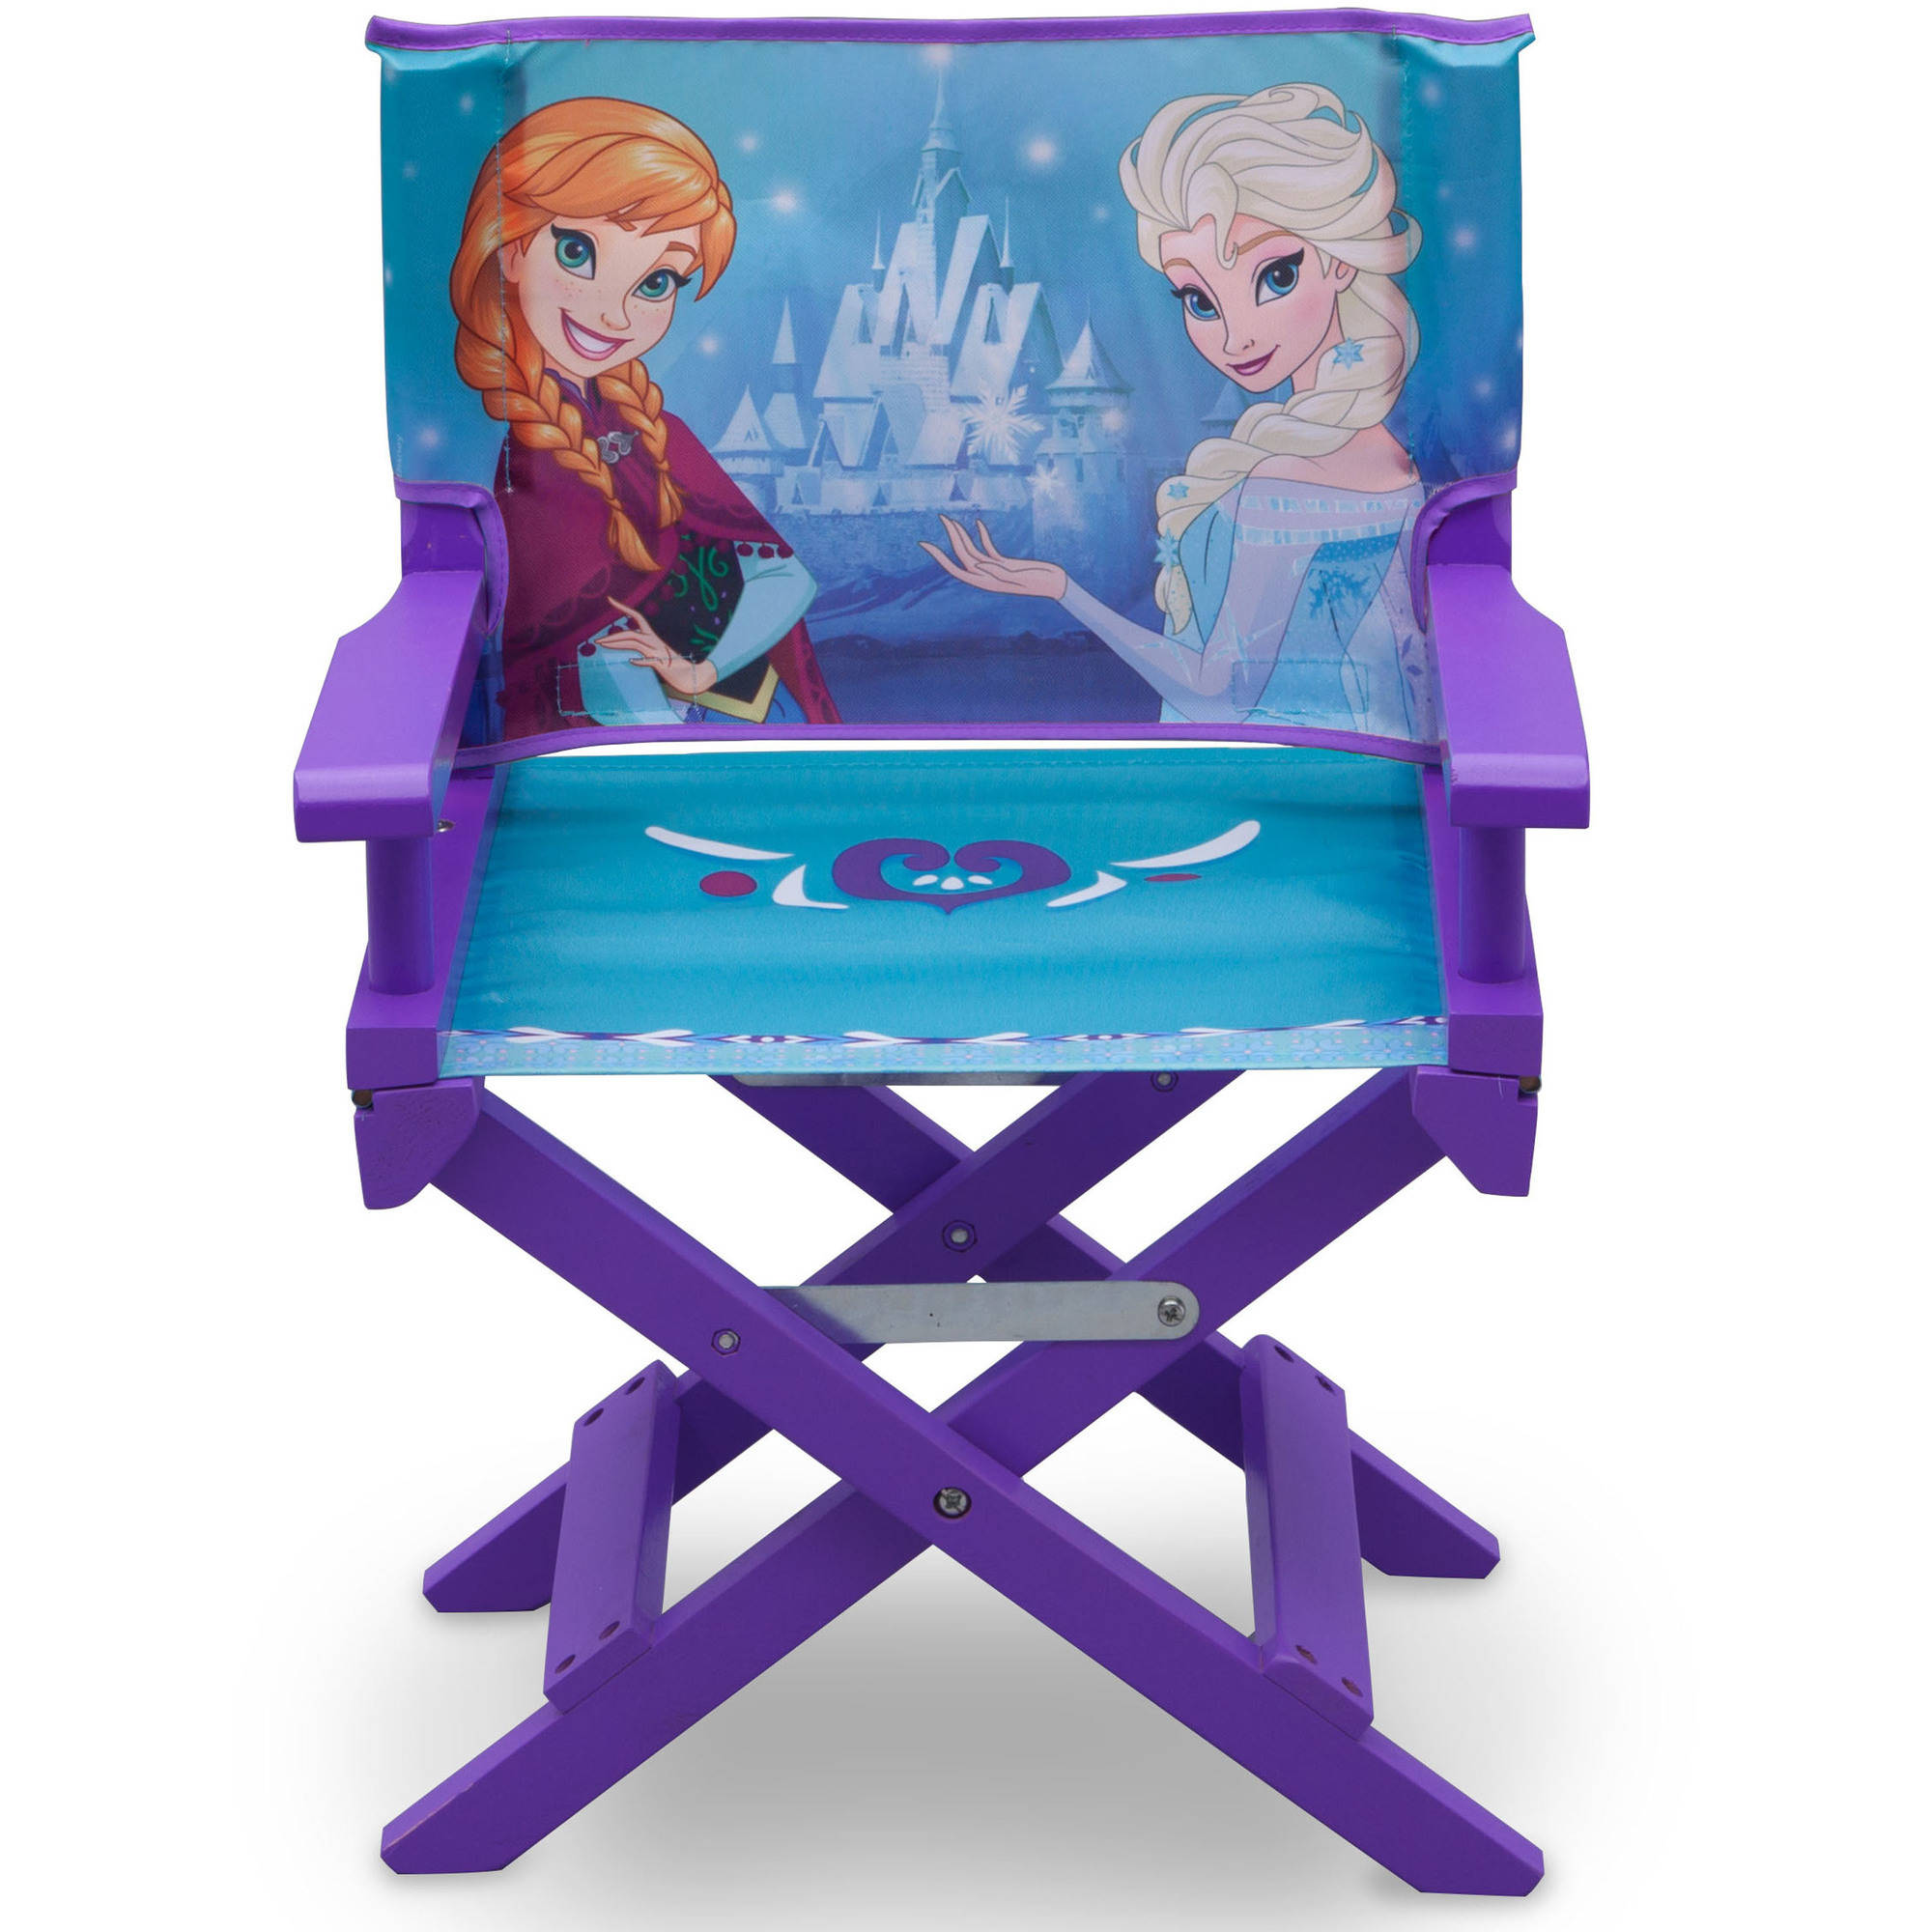 Disney Frozen Director's Chair